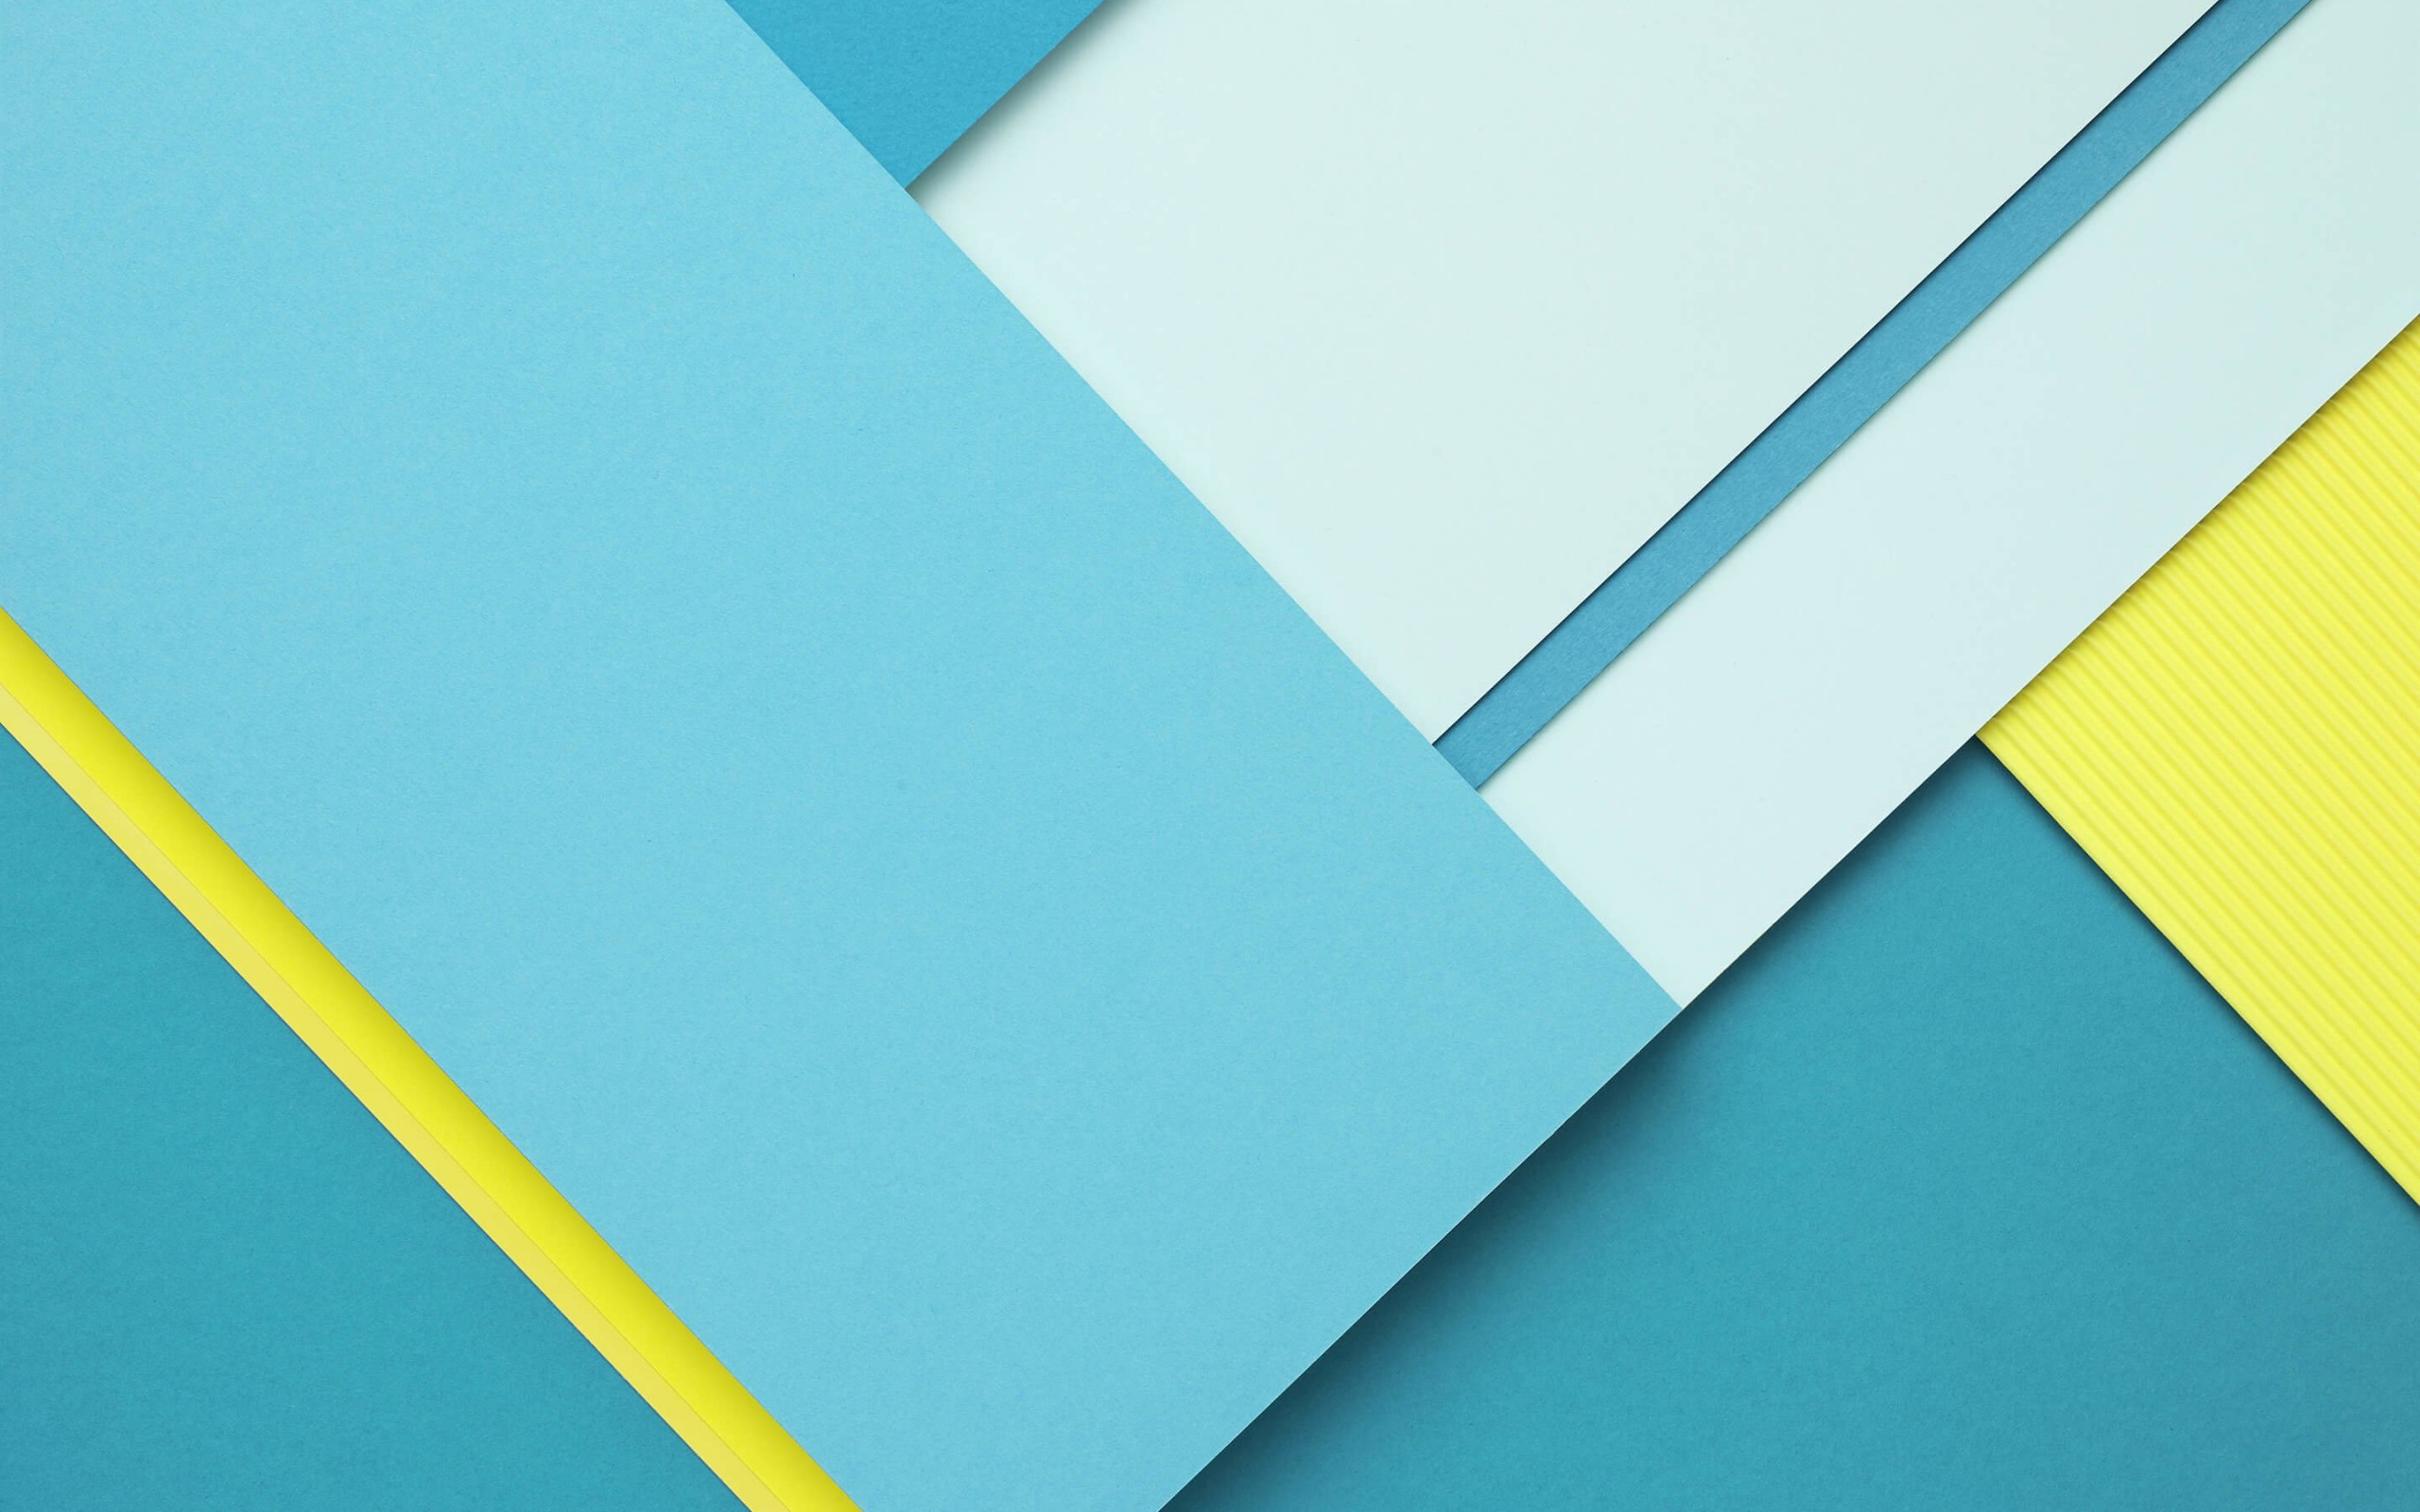 Google Material Design Wallpaper for Desktop 2560x1600